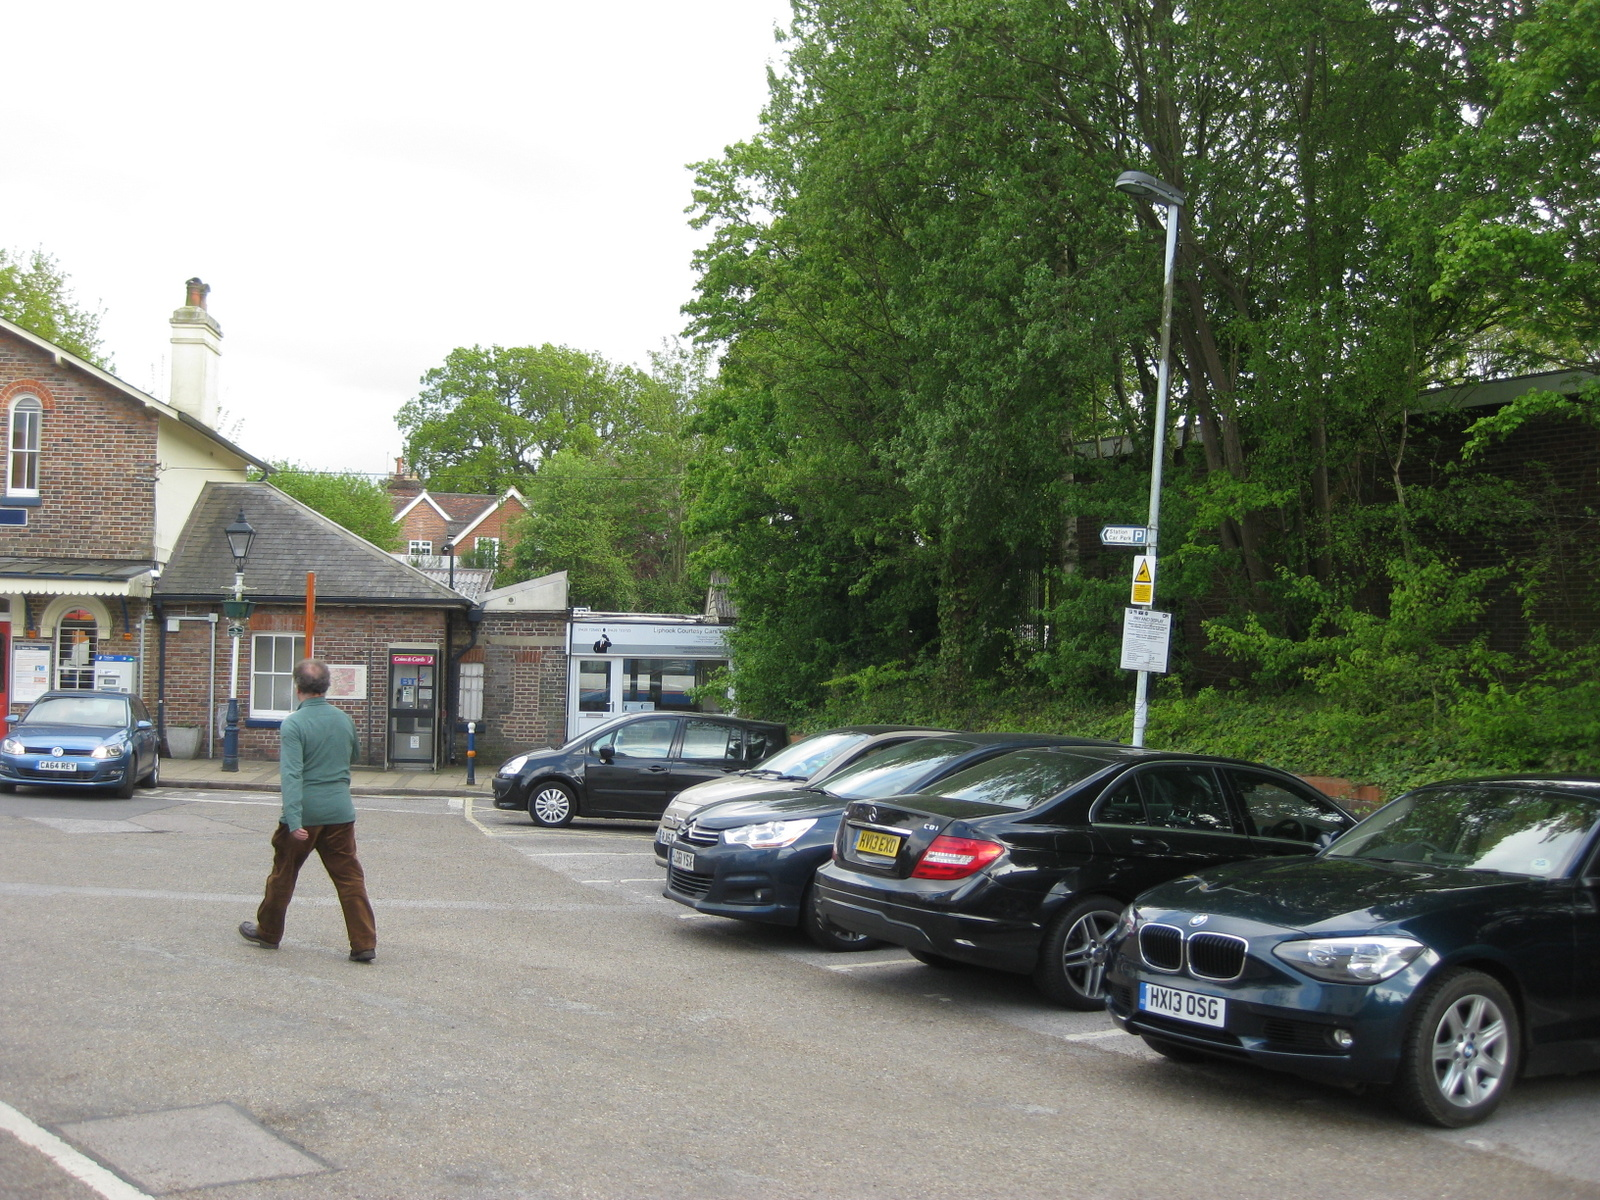 Liphook station as at May 2017